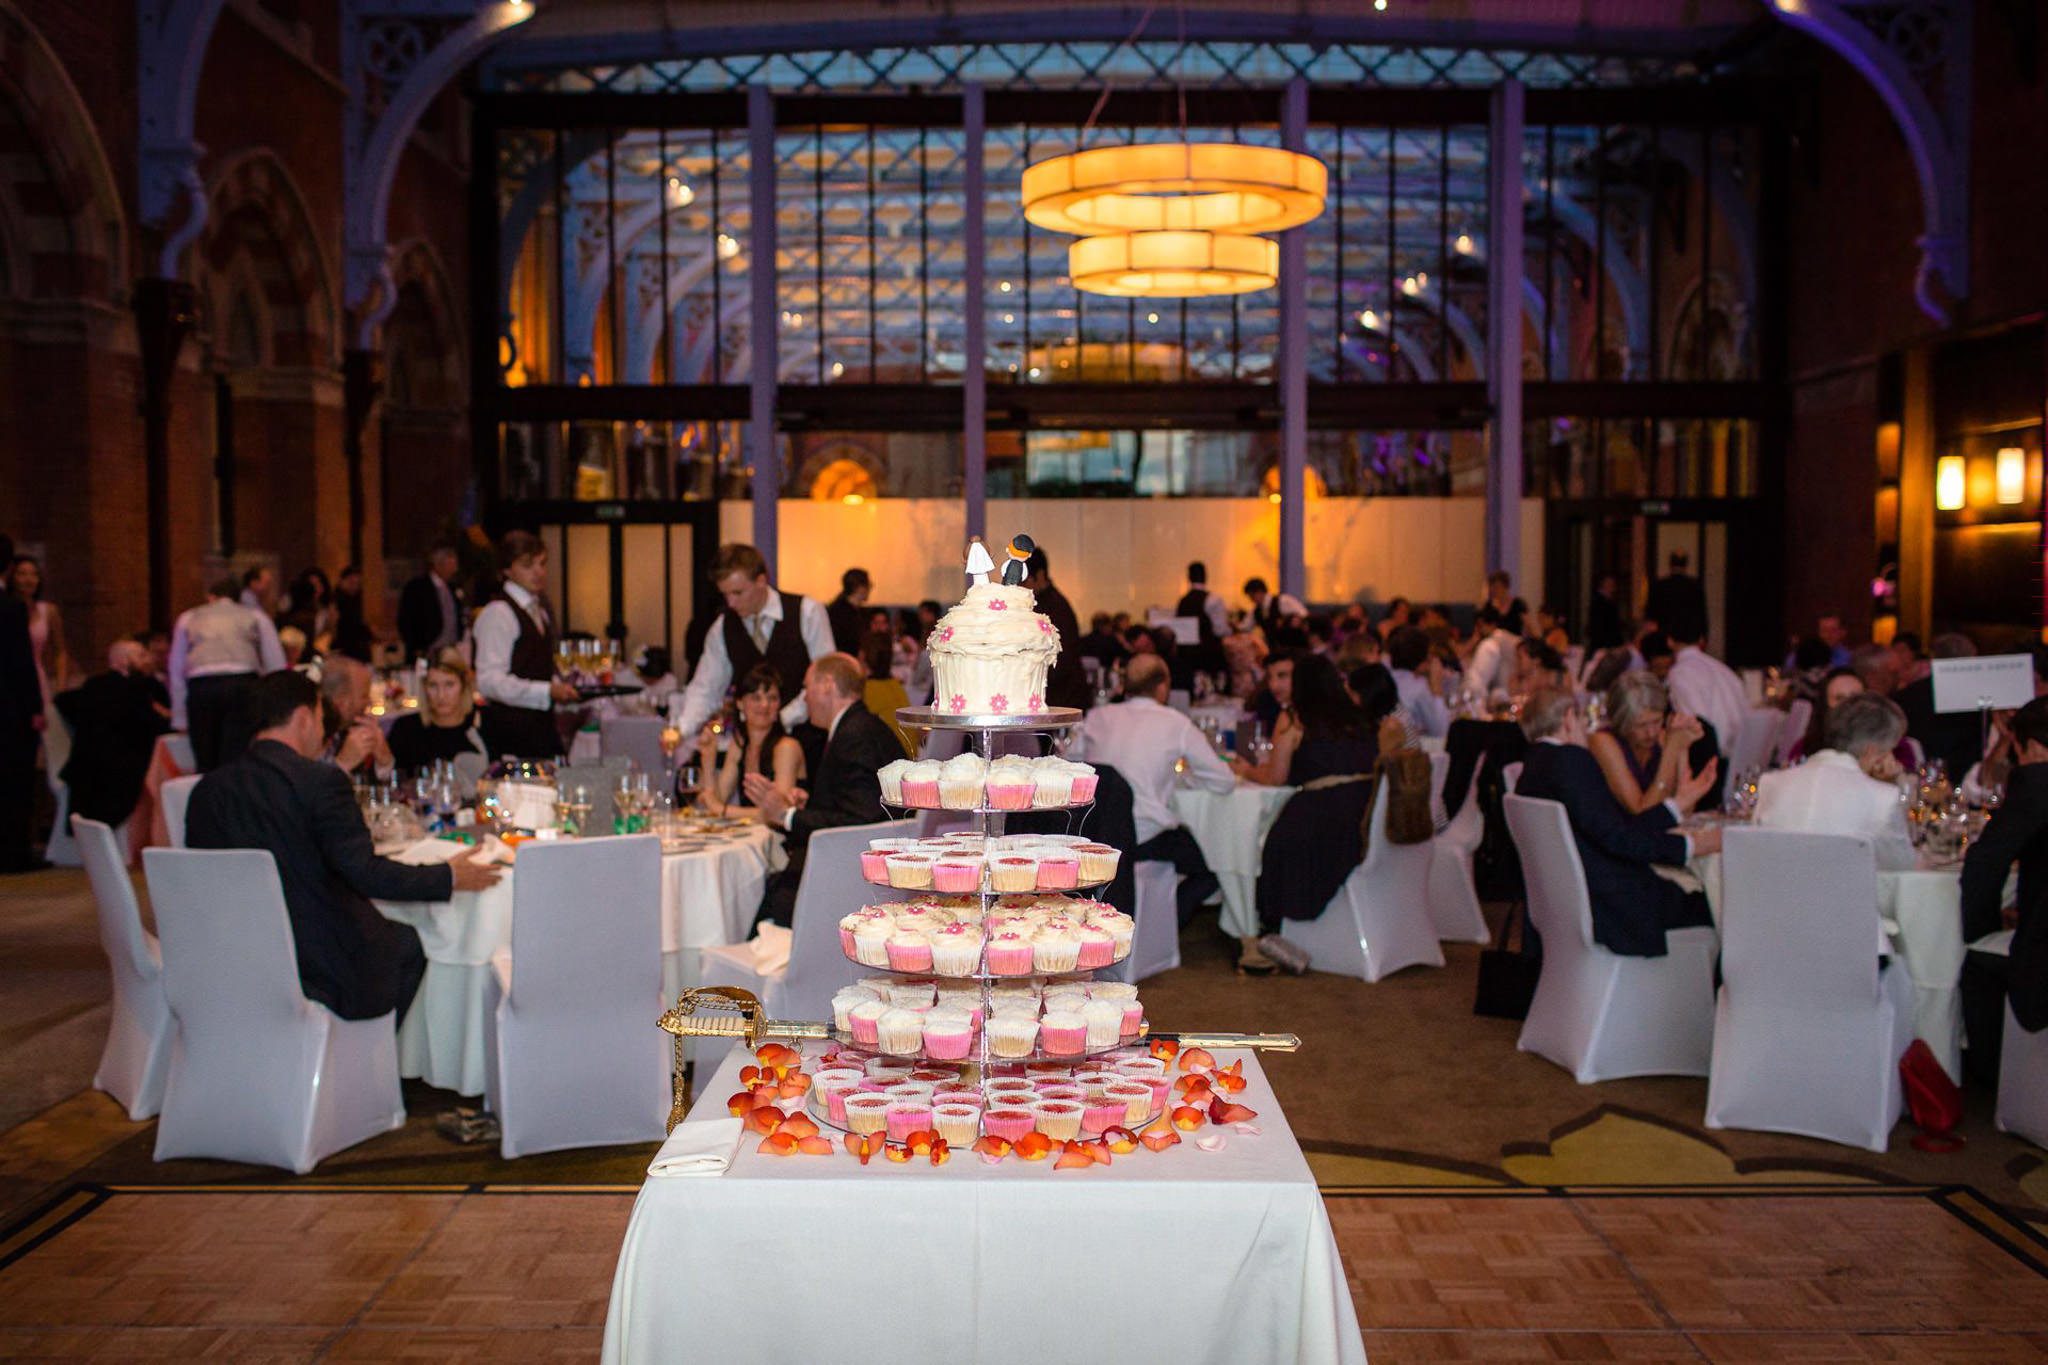 St. Pancras hotel wedding cake in the table